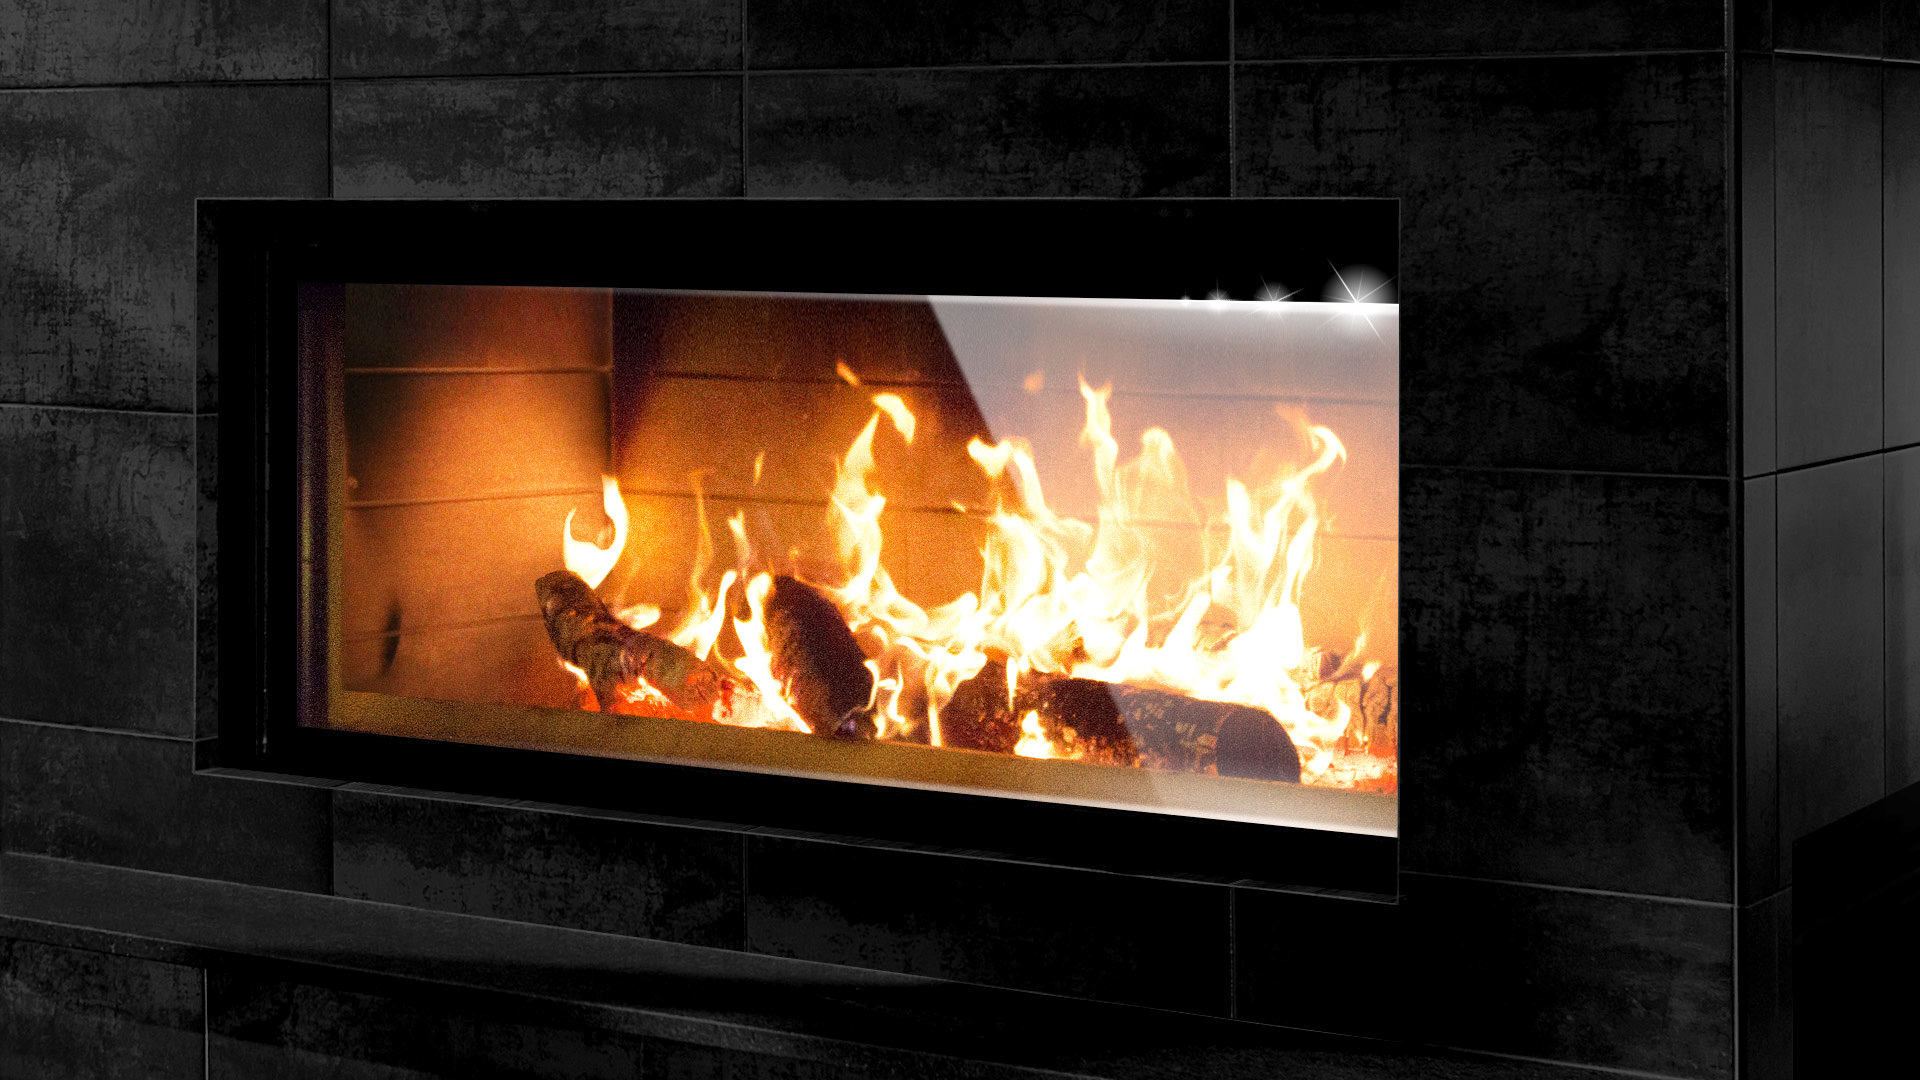 Logs That Clean Fireplace 28 Images 25 Clean Gas Fireplace Design Furniture Insert How To